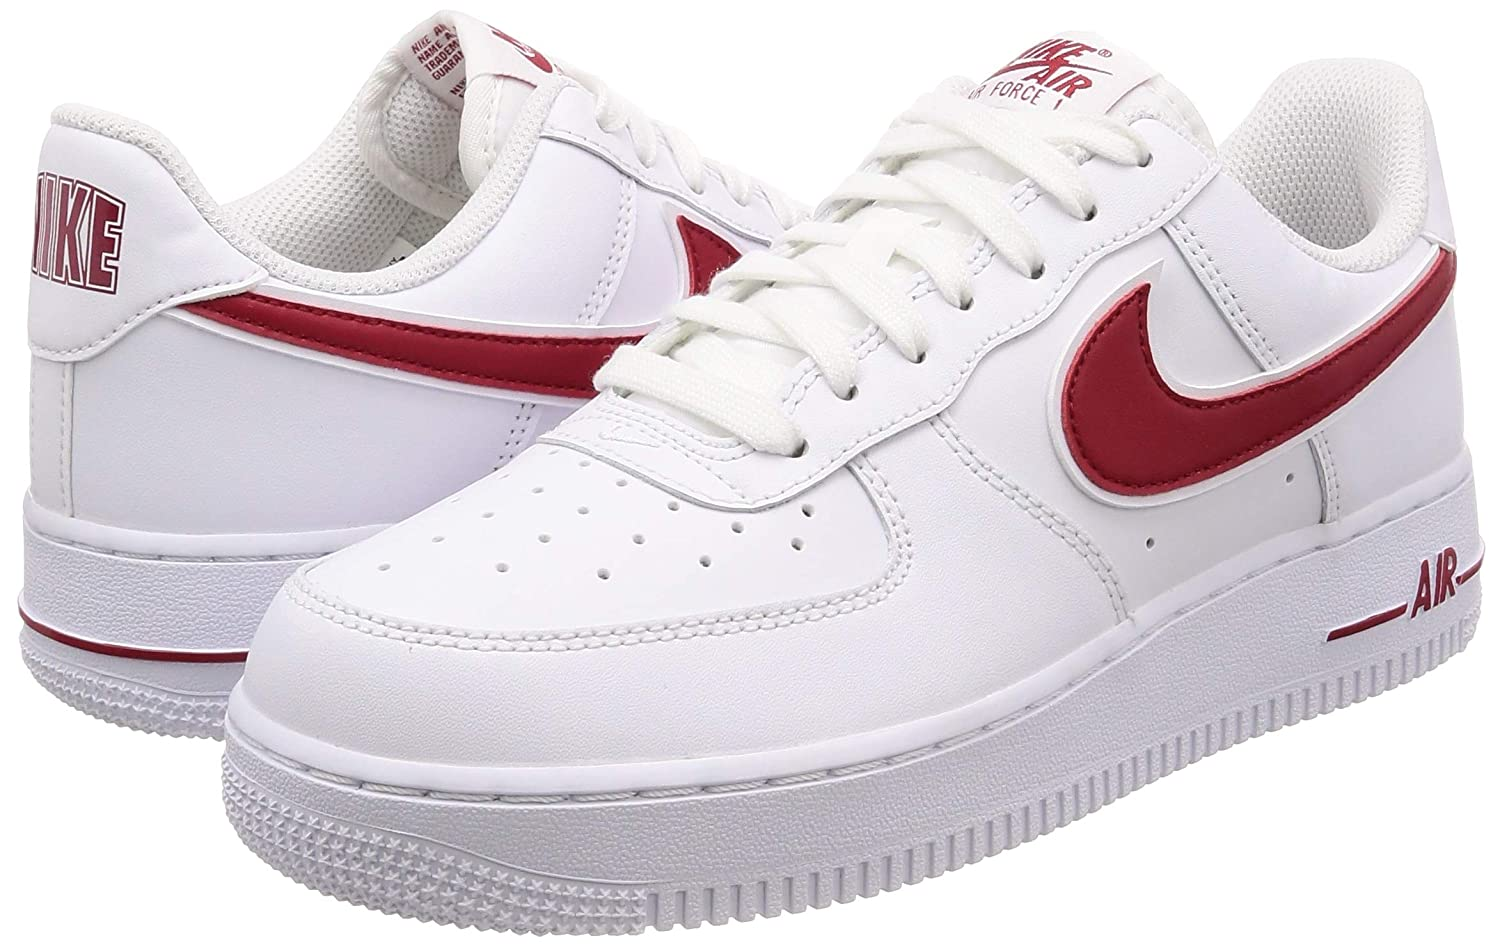 Skate Shoes 729826-601 Red//Black//White Nike SB Clutch GS